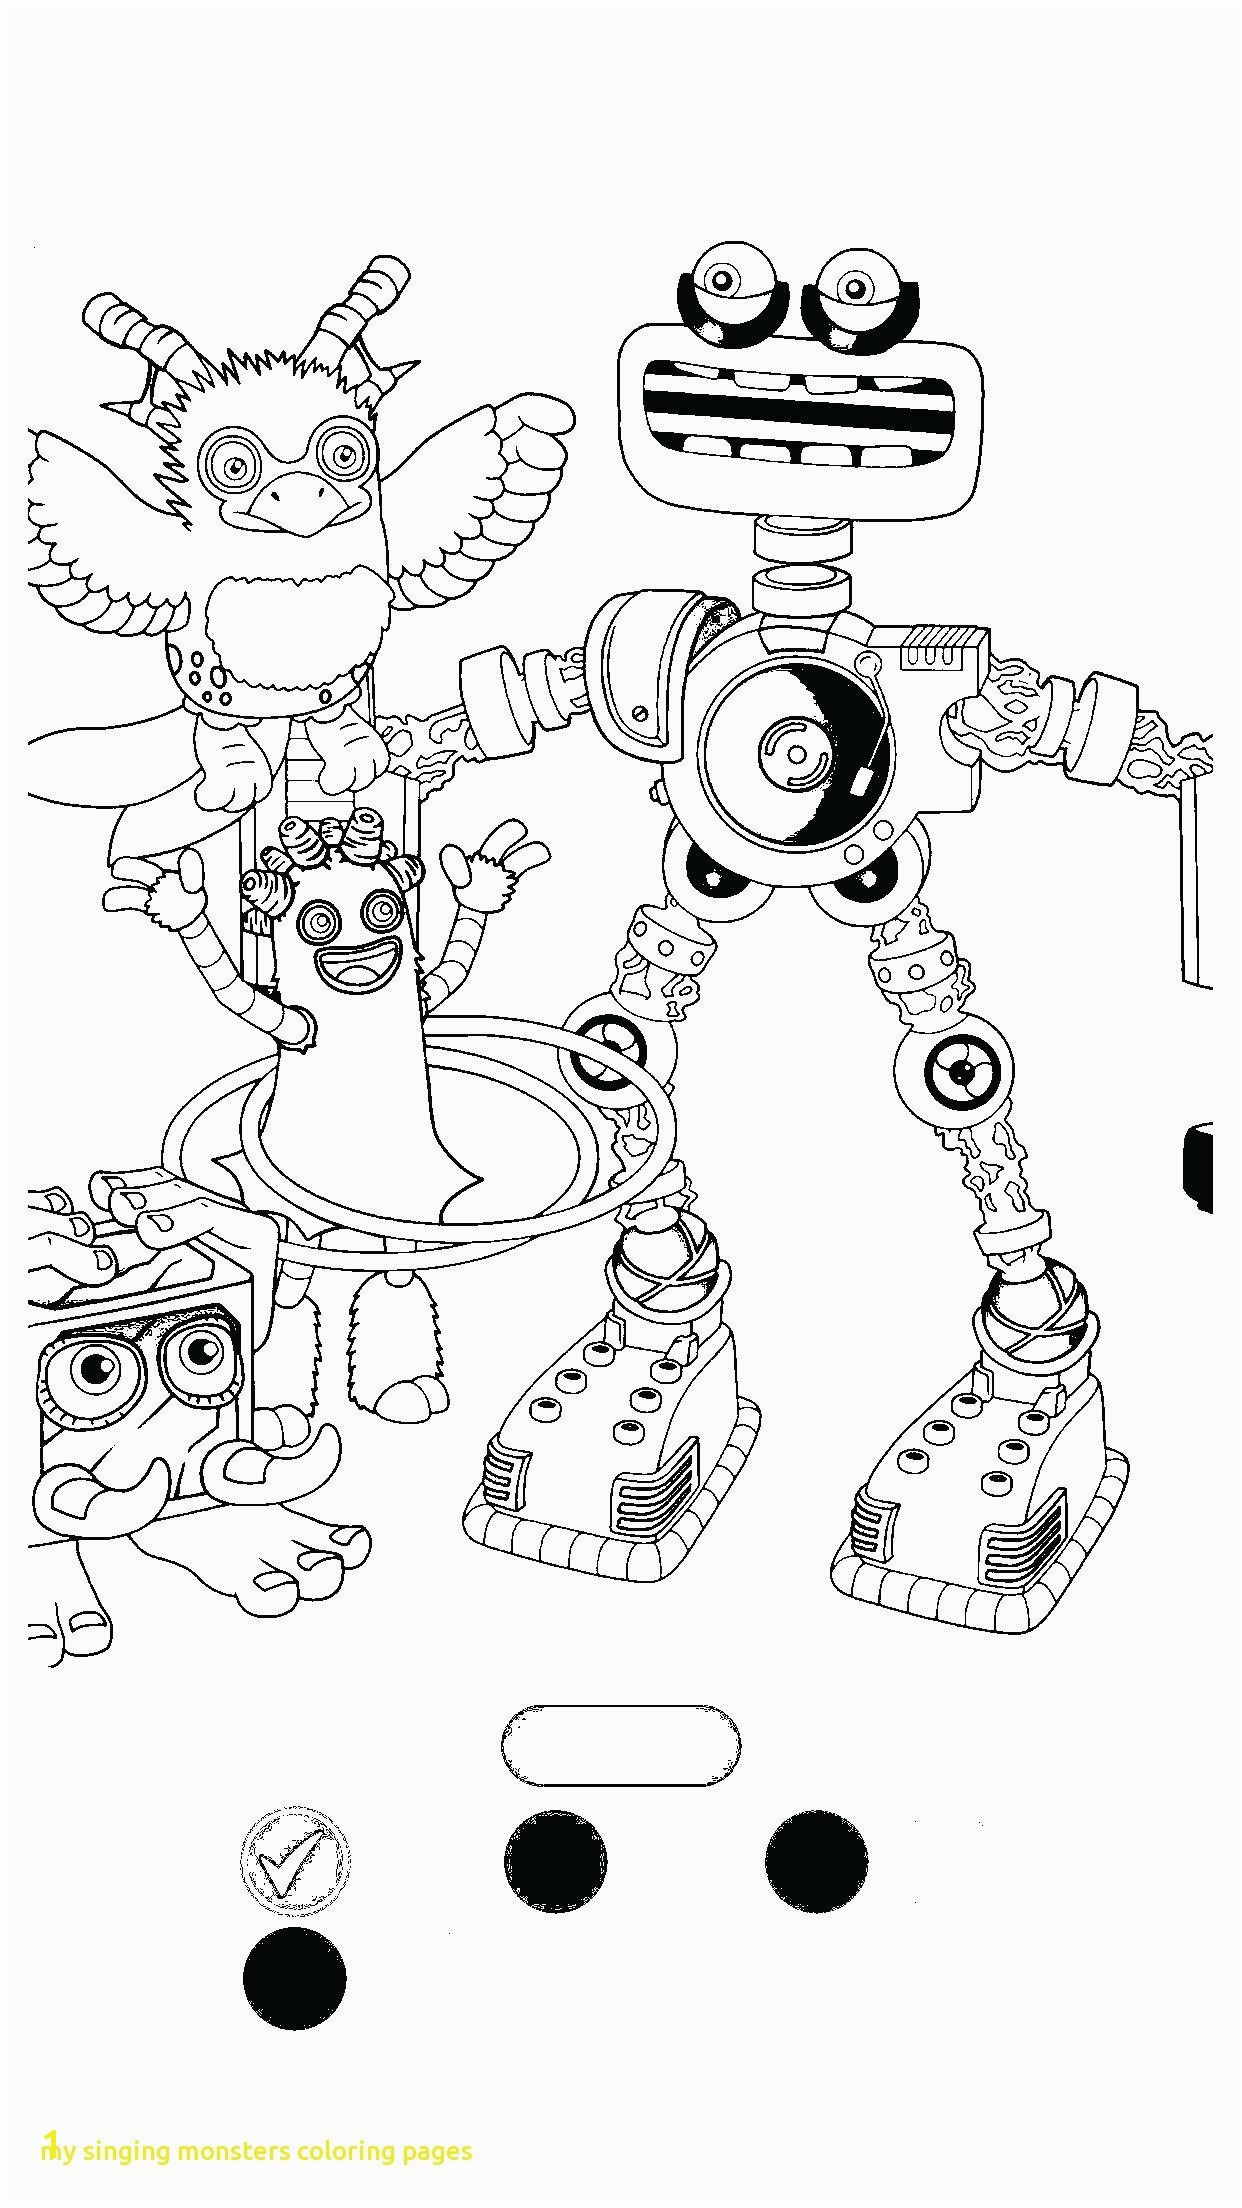 My Singing Monsters Coloring Pages Elegant Monsters Coloring Pages Free Coloring Pages Download